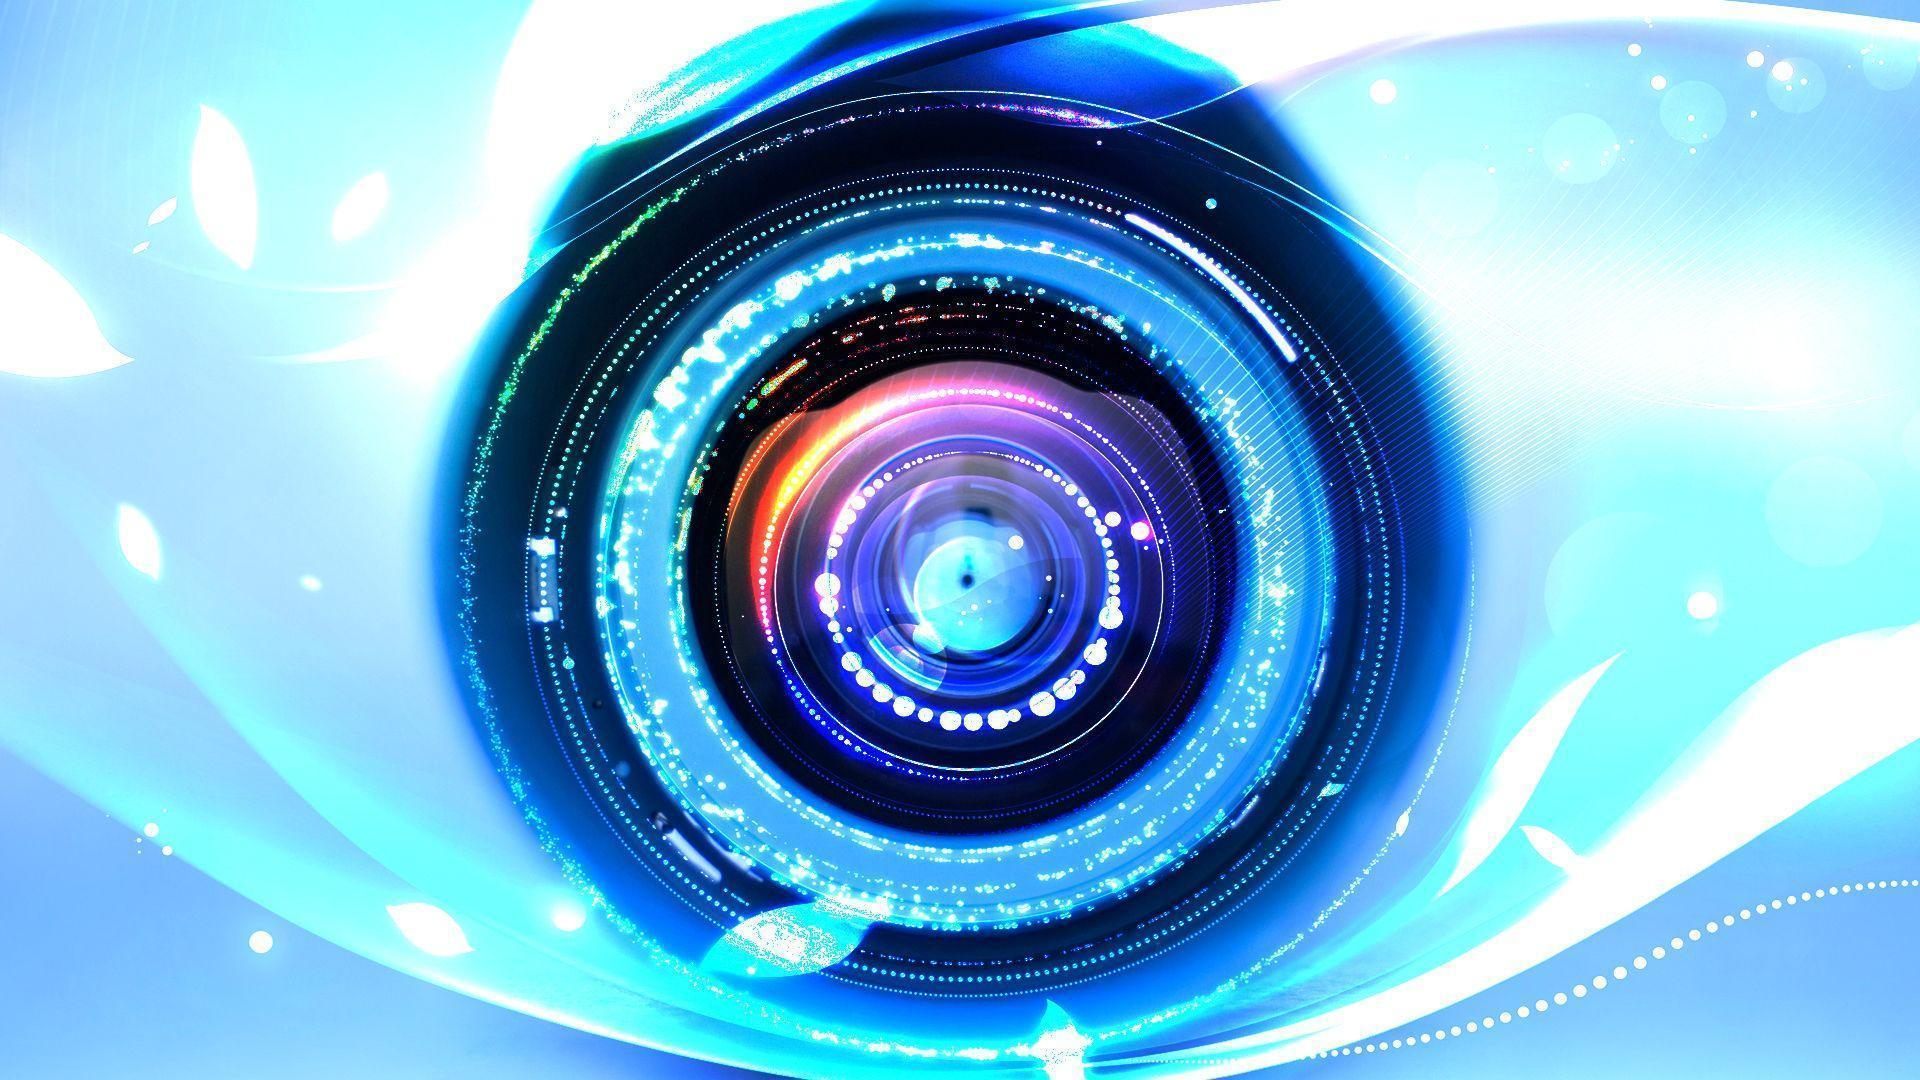 Big Lens High Res Stock Photos wallpaper | other | Wallpaper Better